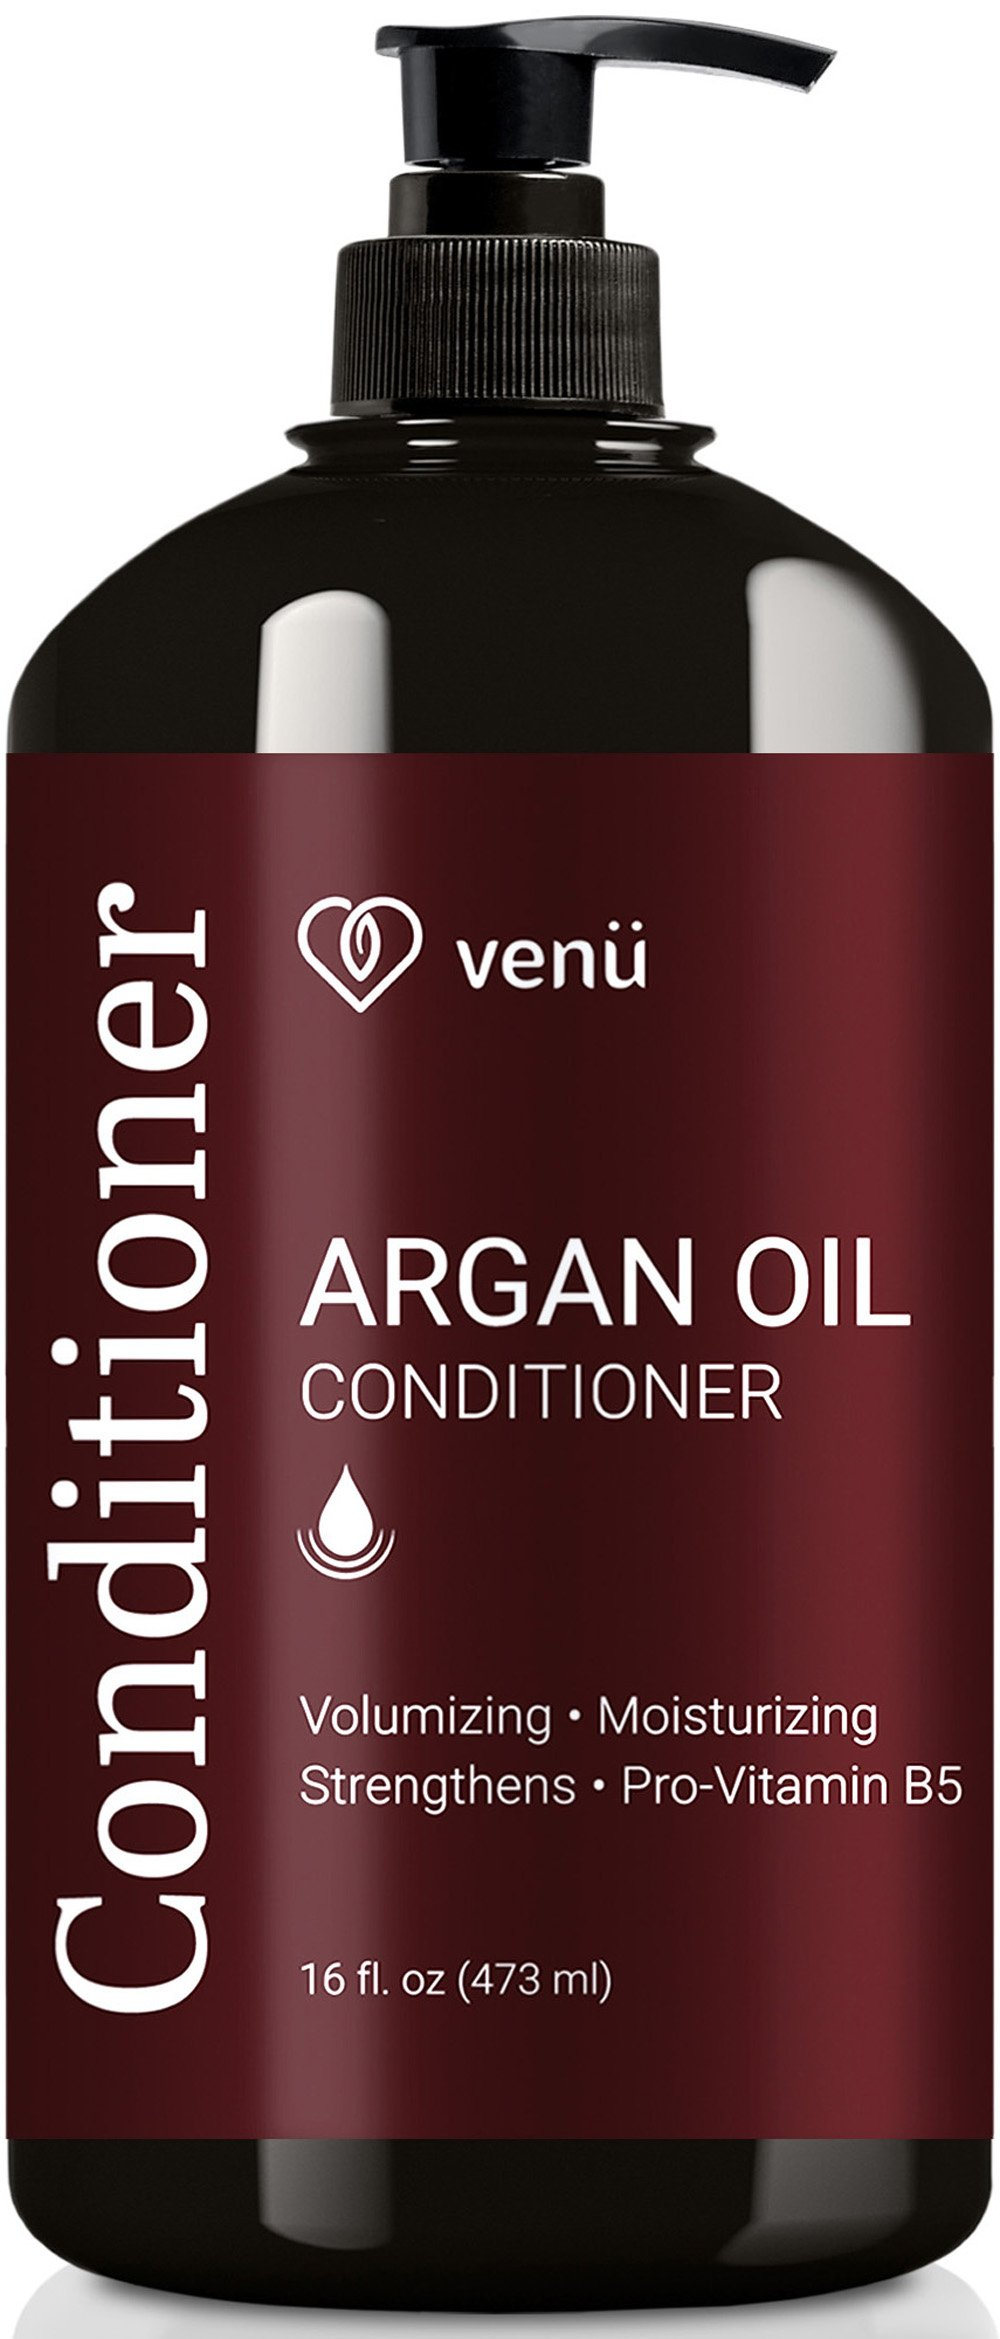 Argan Oil Conditioner - Volumizing, Hydrating and Detangling For all Hair Types - All Natural Sulfate Free Essential Oils - Safe for Color Treated, Chemically Processed and Curly Hair – by Venu